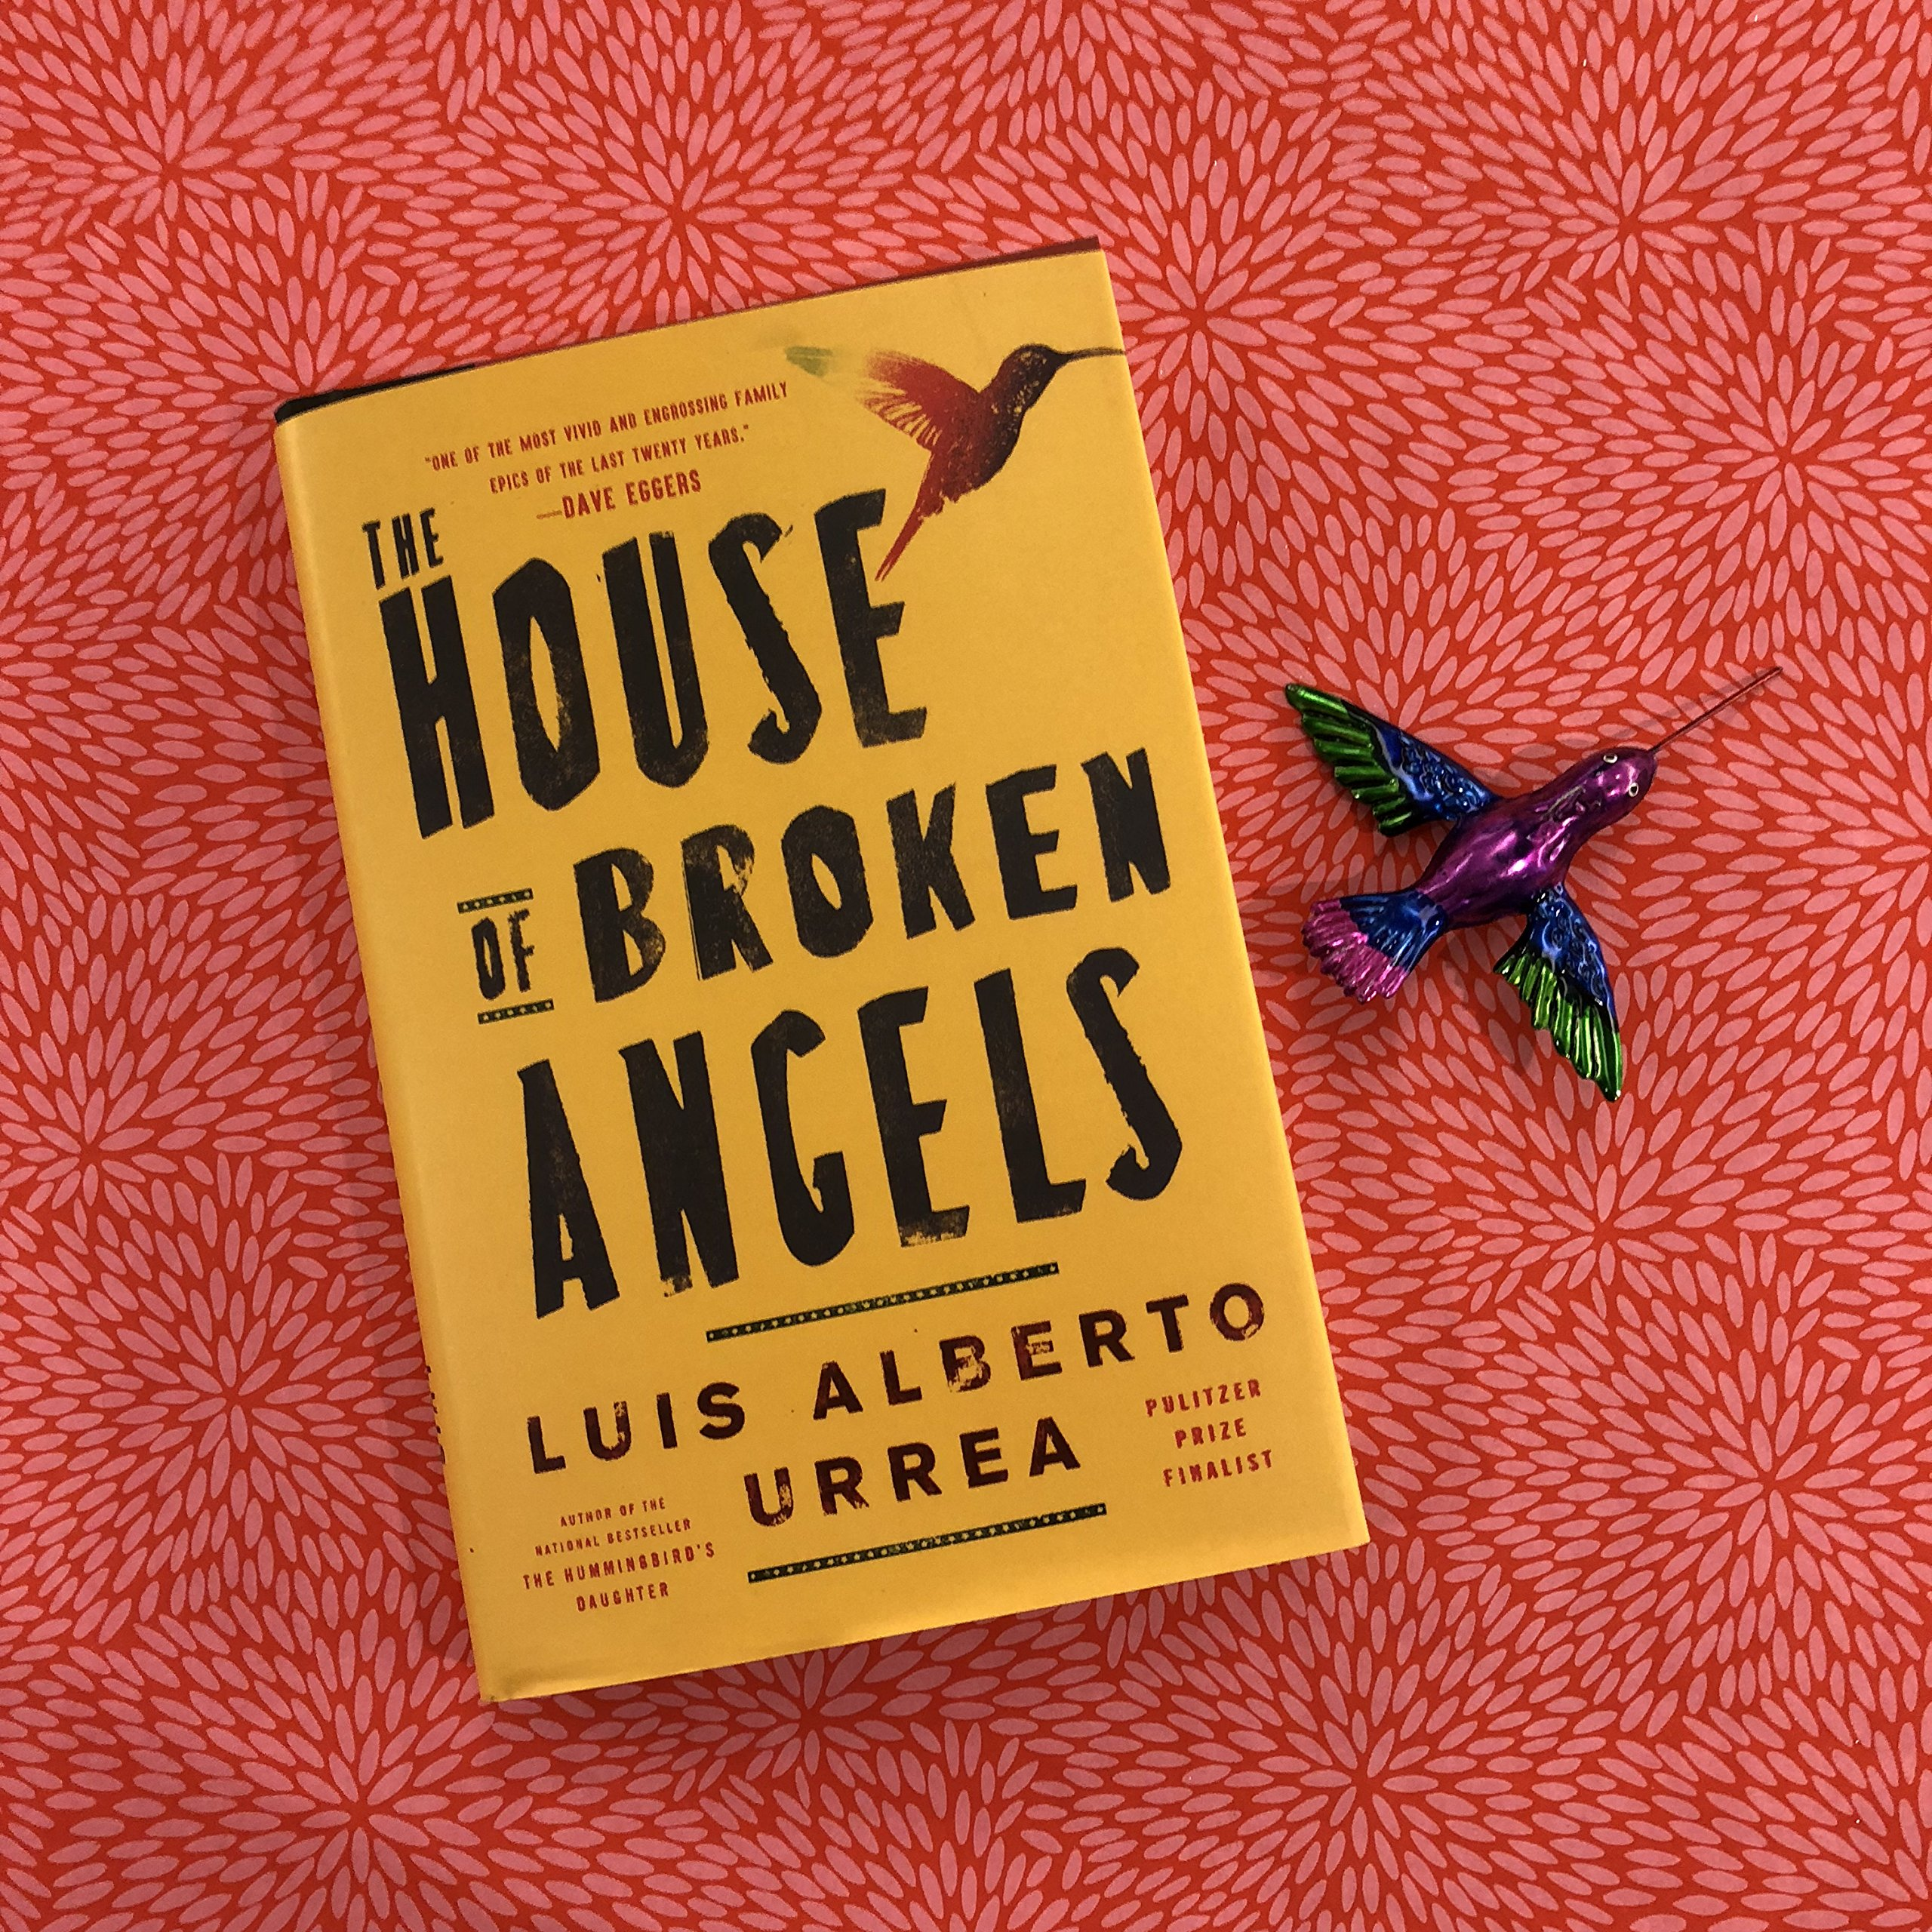 Amazon com: The House of Broken Angels (9780316154888): Luis Alberto